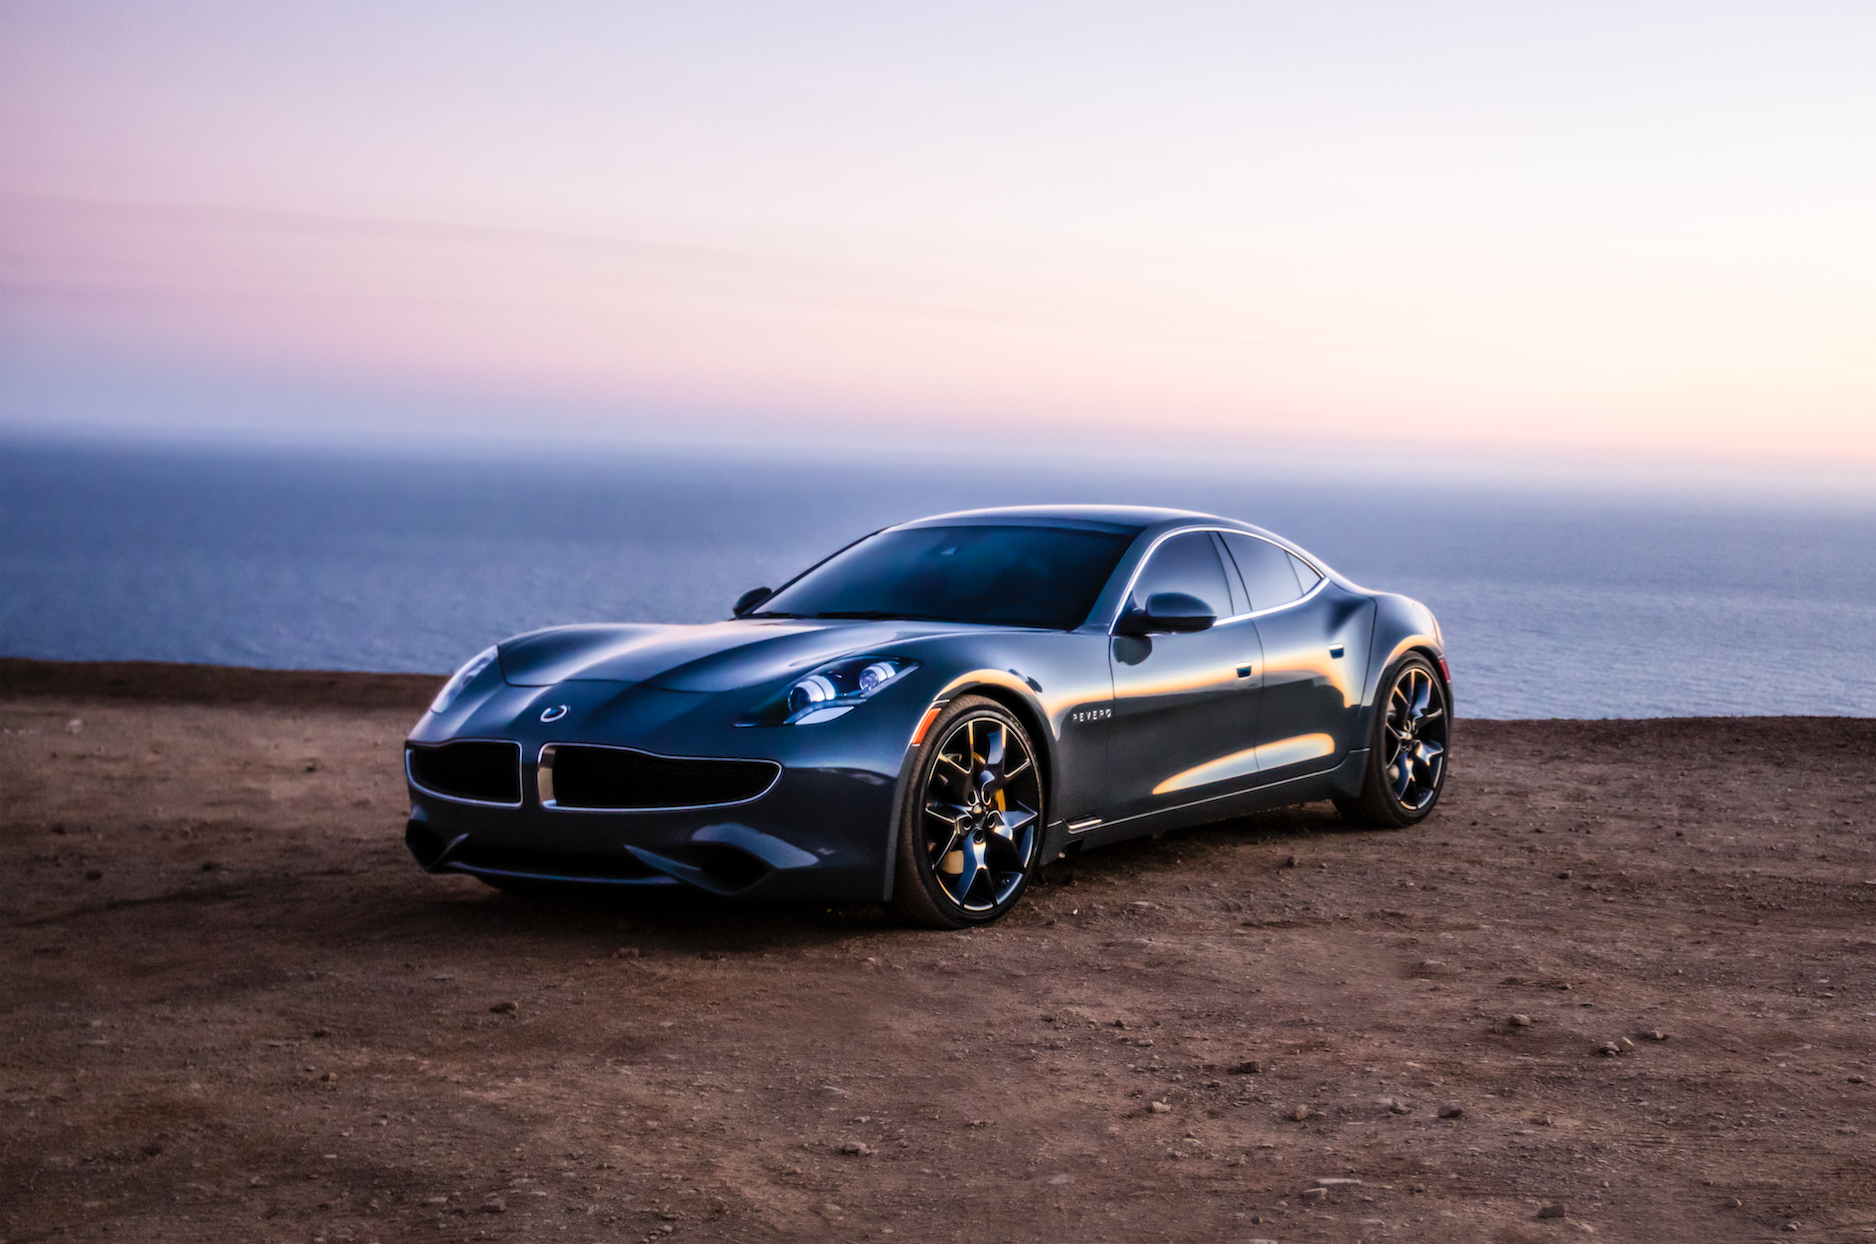 Superior Karma Looks To Mount A Comeback With The Revero, Its $130k Hybrid Electric  Sports Car